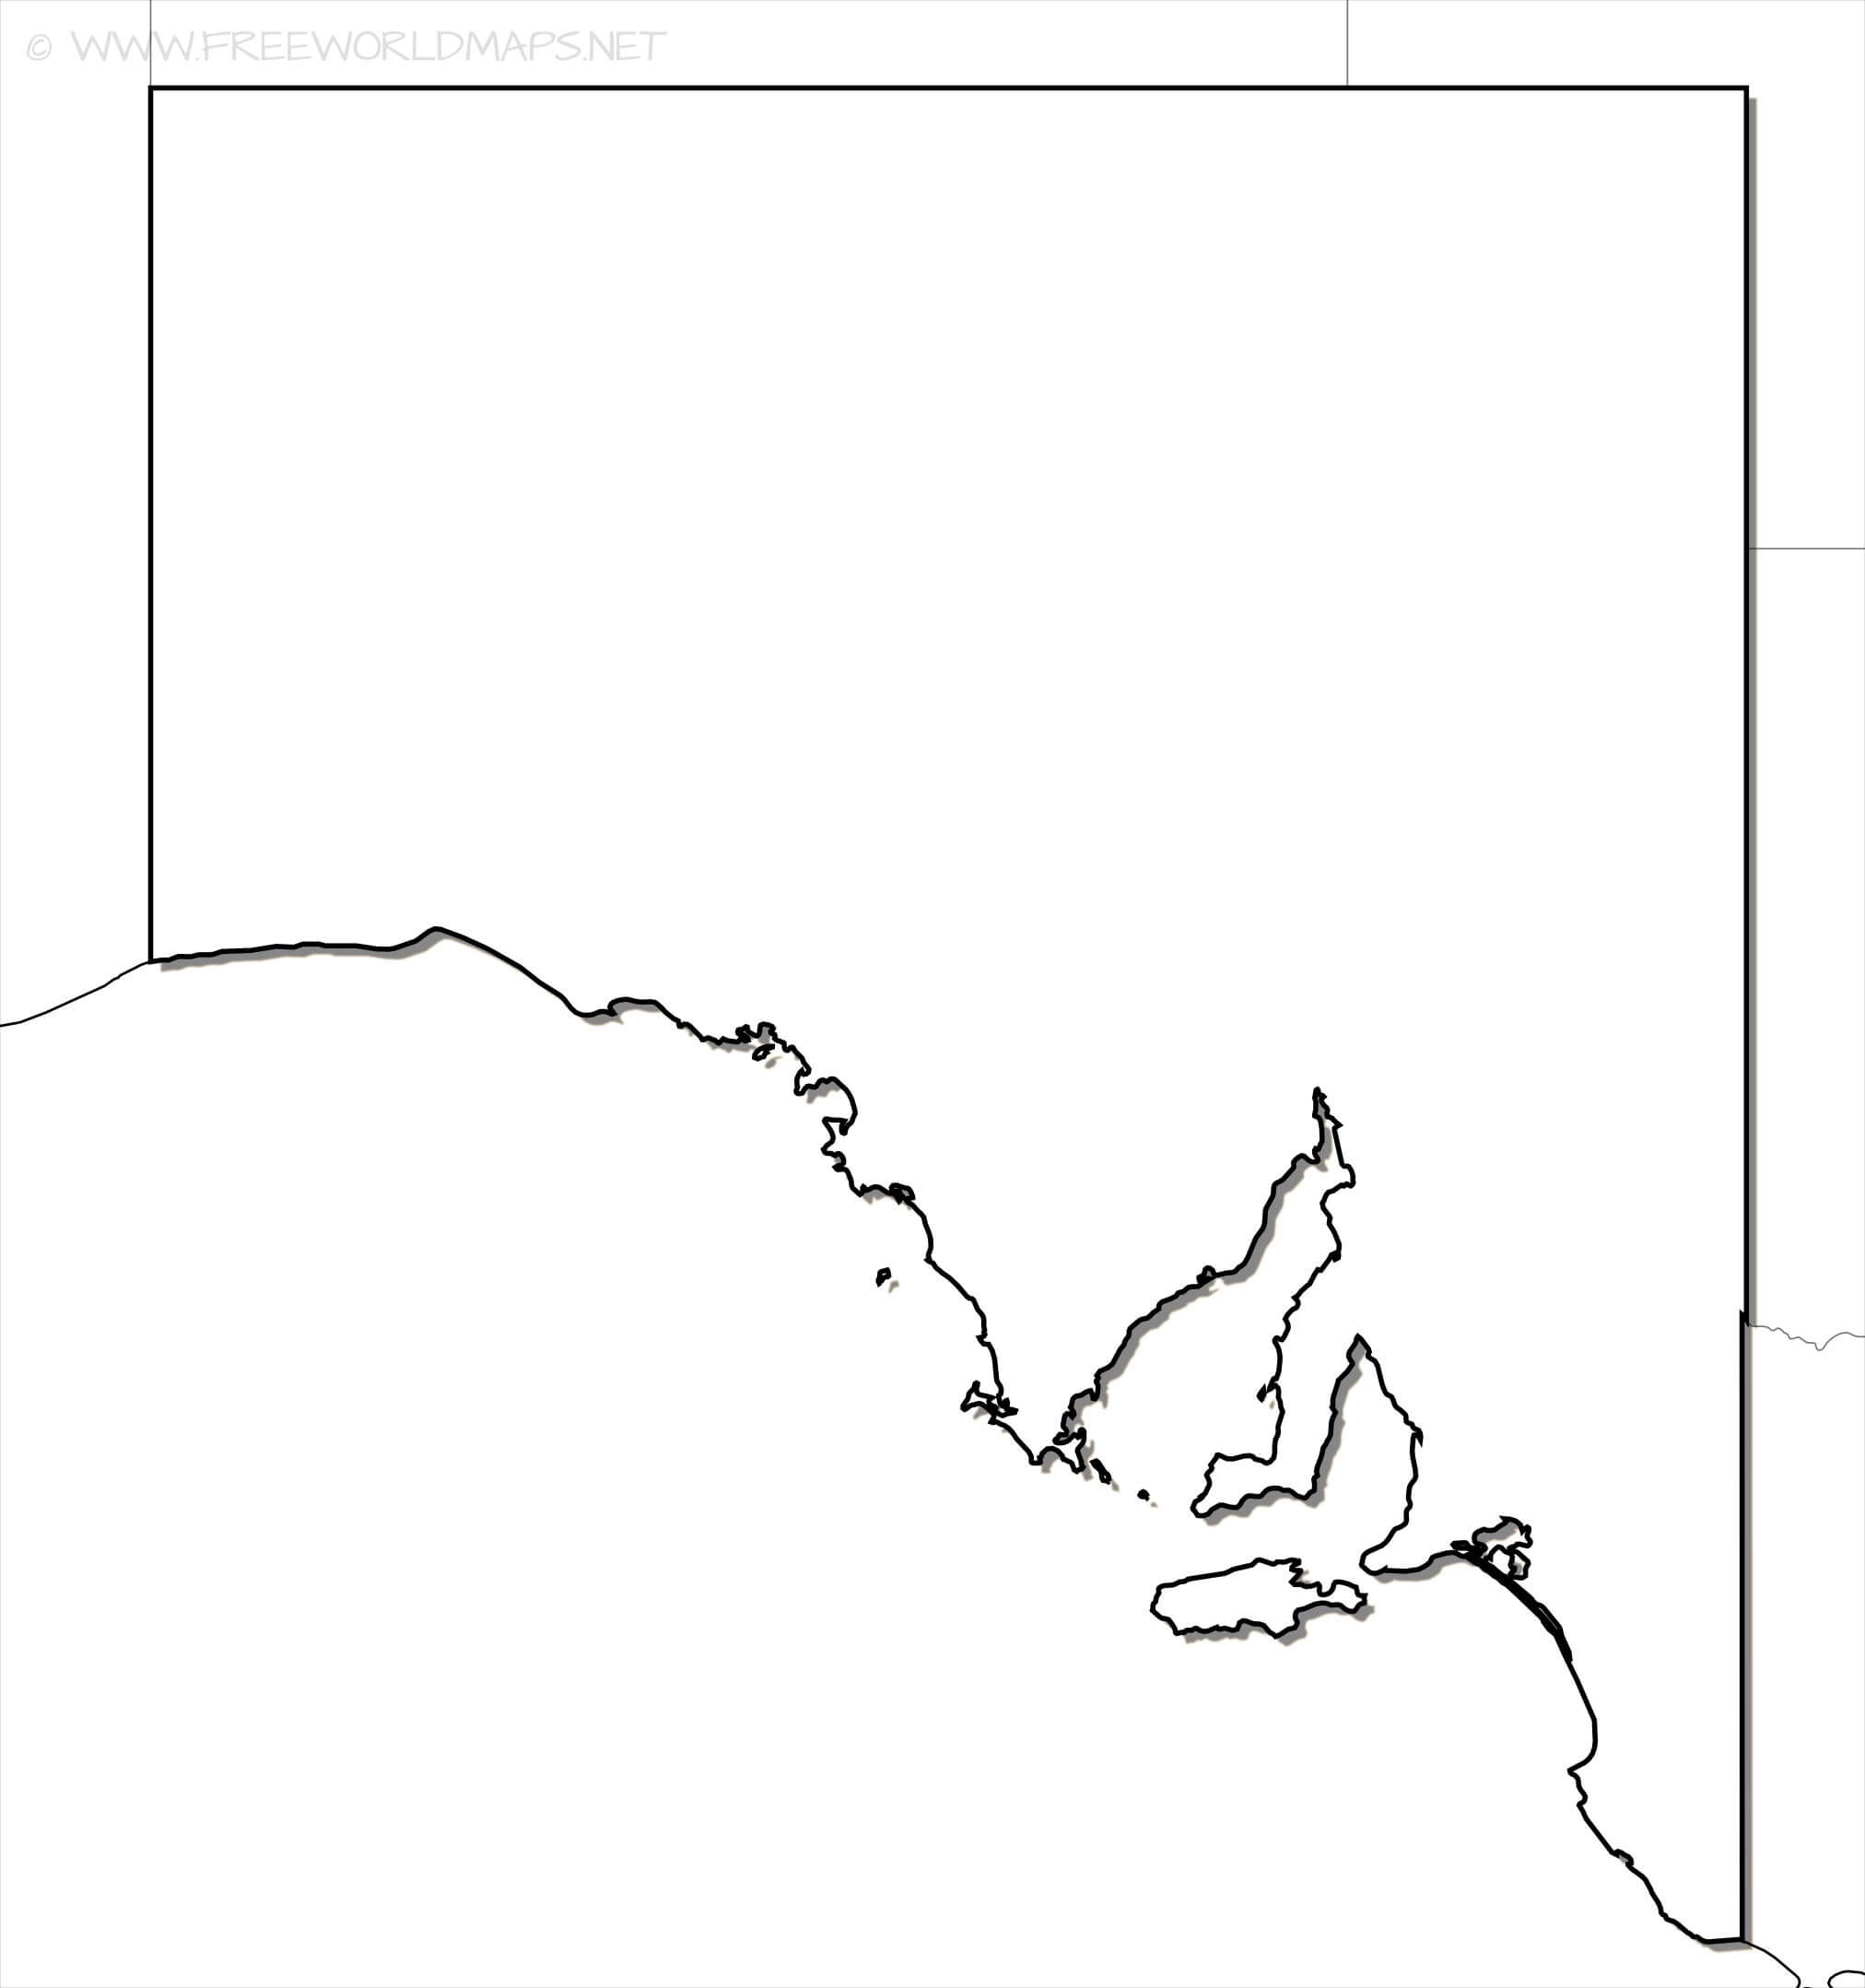 south australia outline map hd